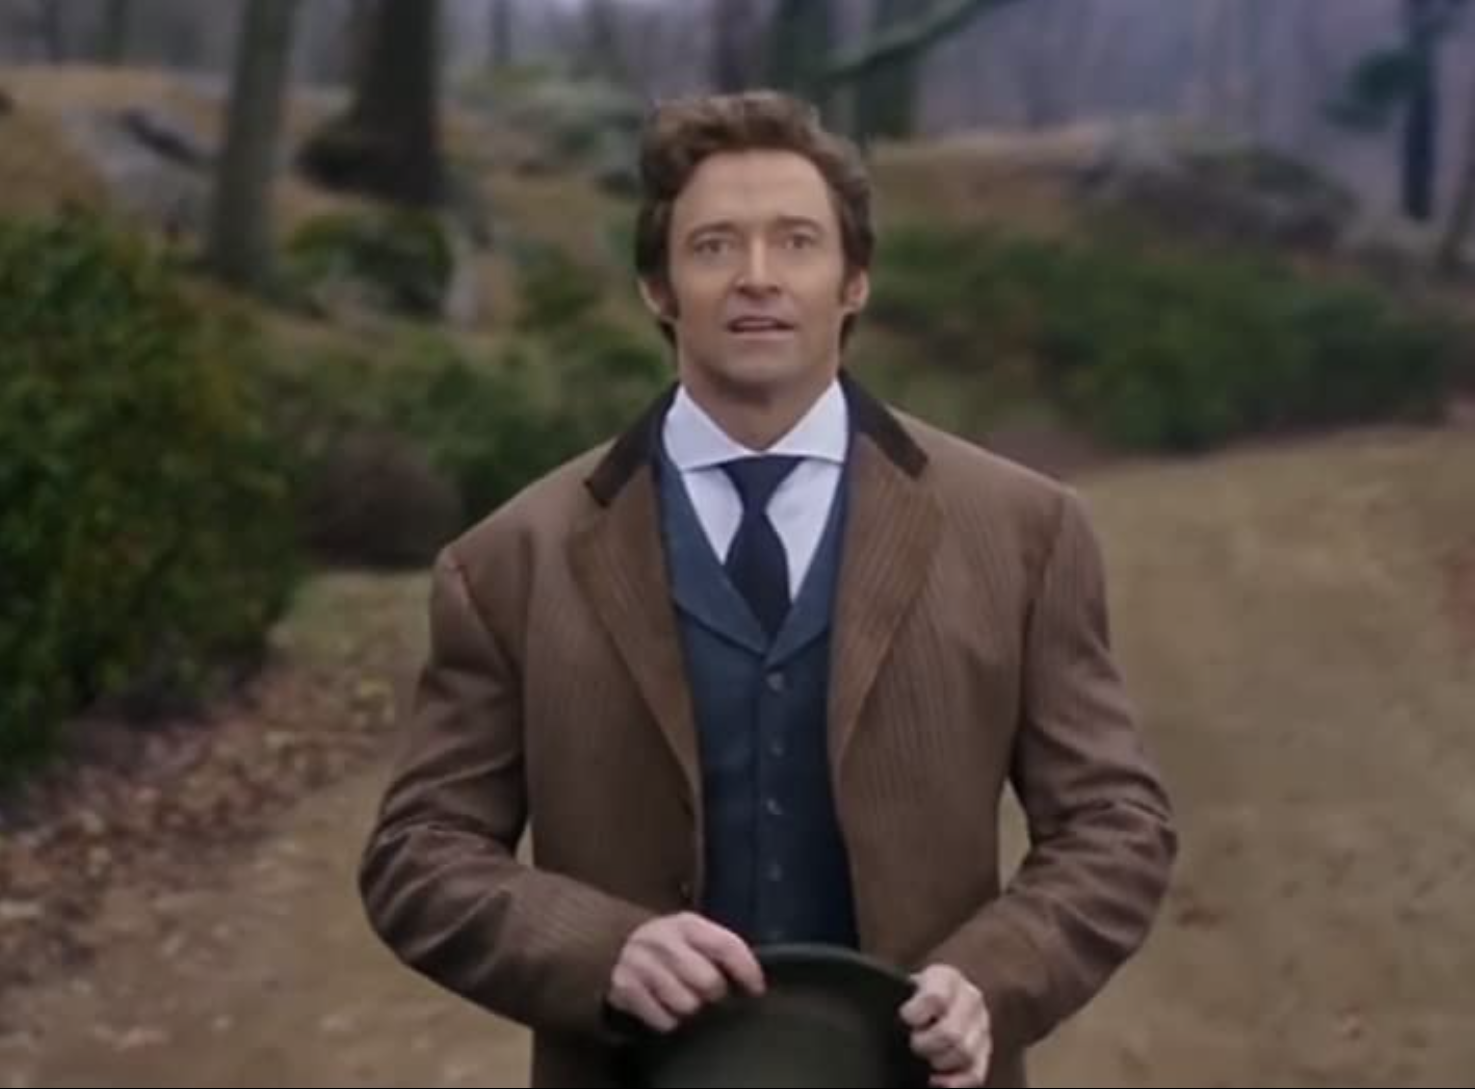 Screenshot 2021 05 21 at 08.59.56 e1621584040236 30 Things You Didn't Know About The Greatest Showman